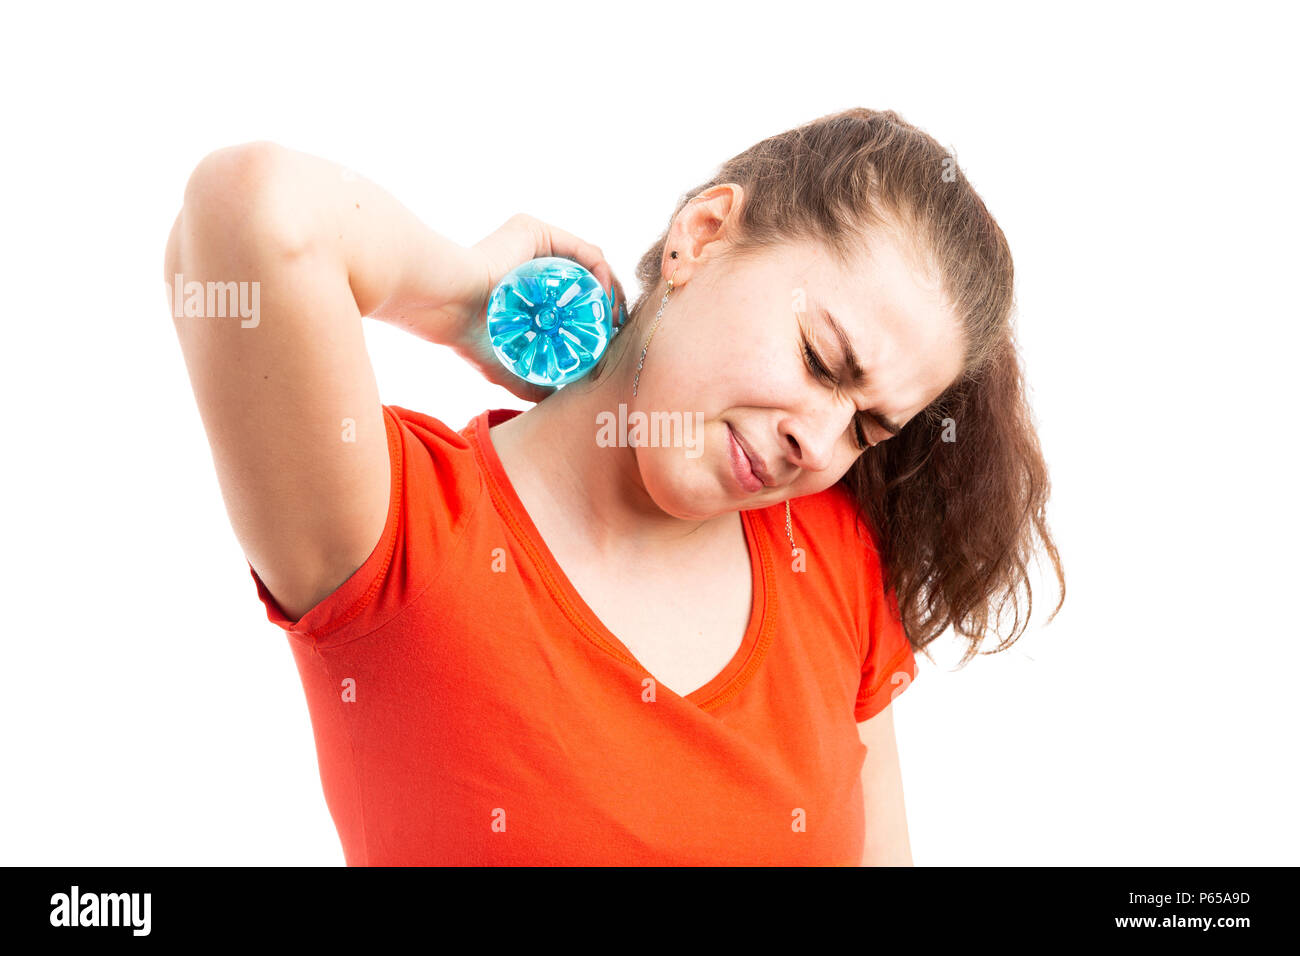 Young woman suffering from hot weather cooling with water bottle touching her neck as medical high temperature problem concept isolated on white backg - Stock Image